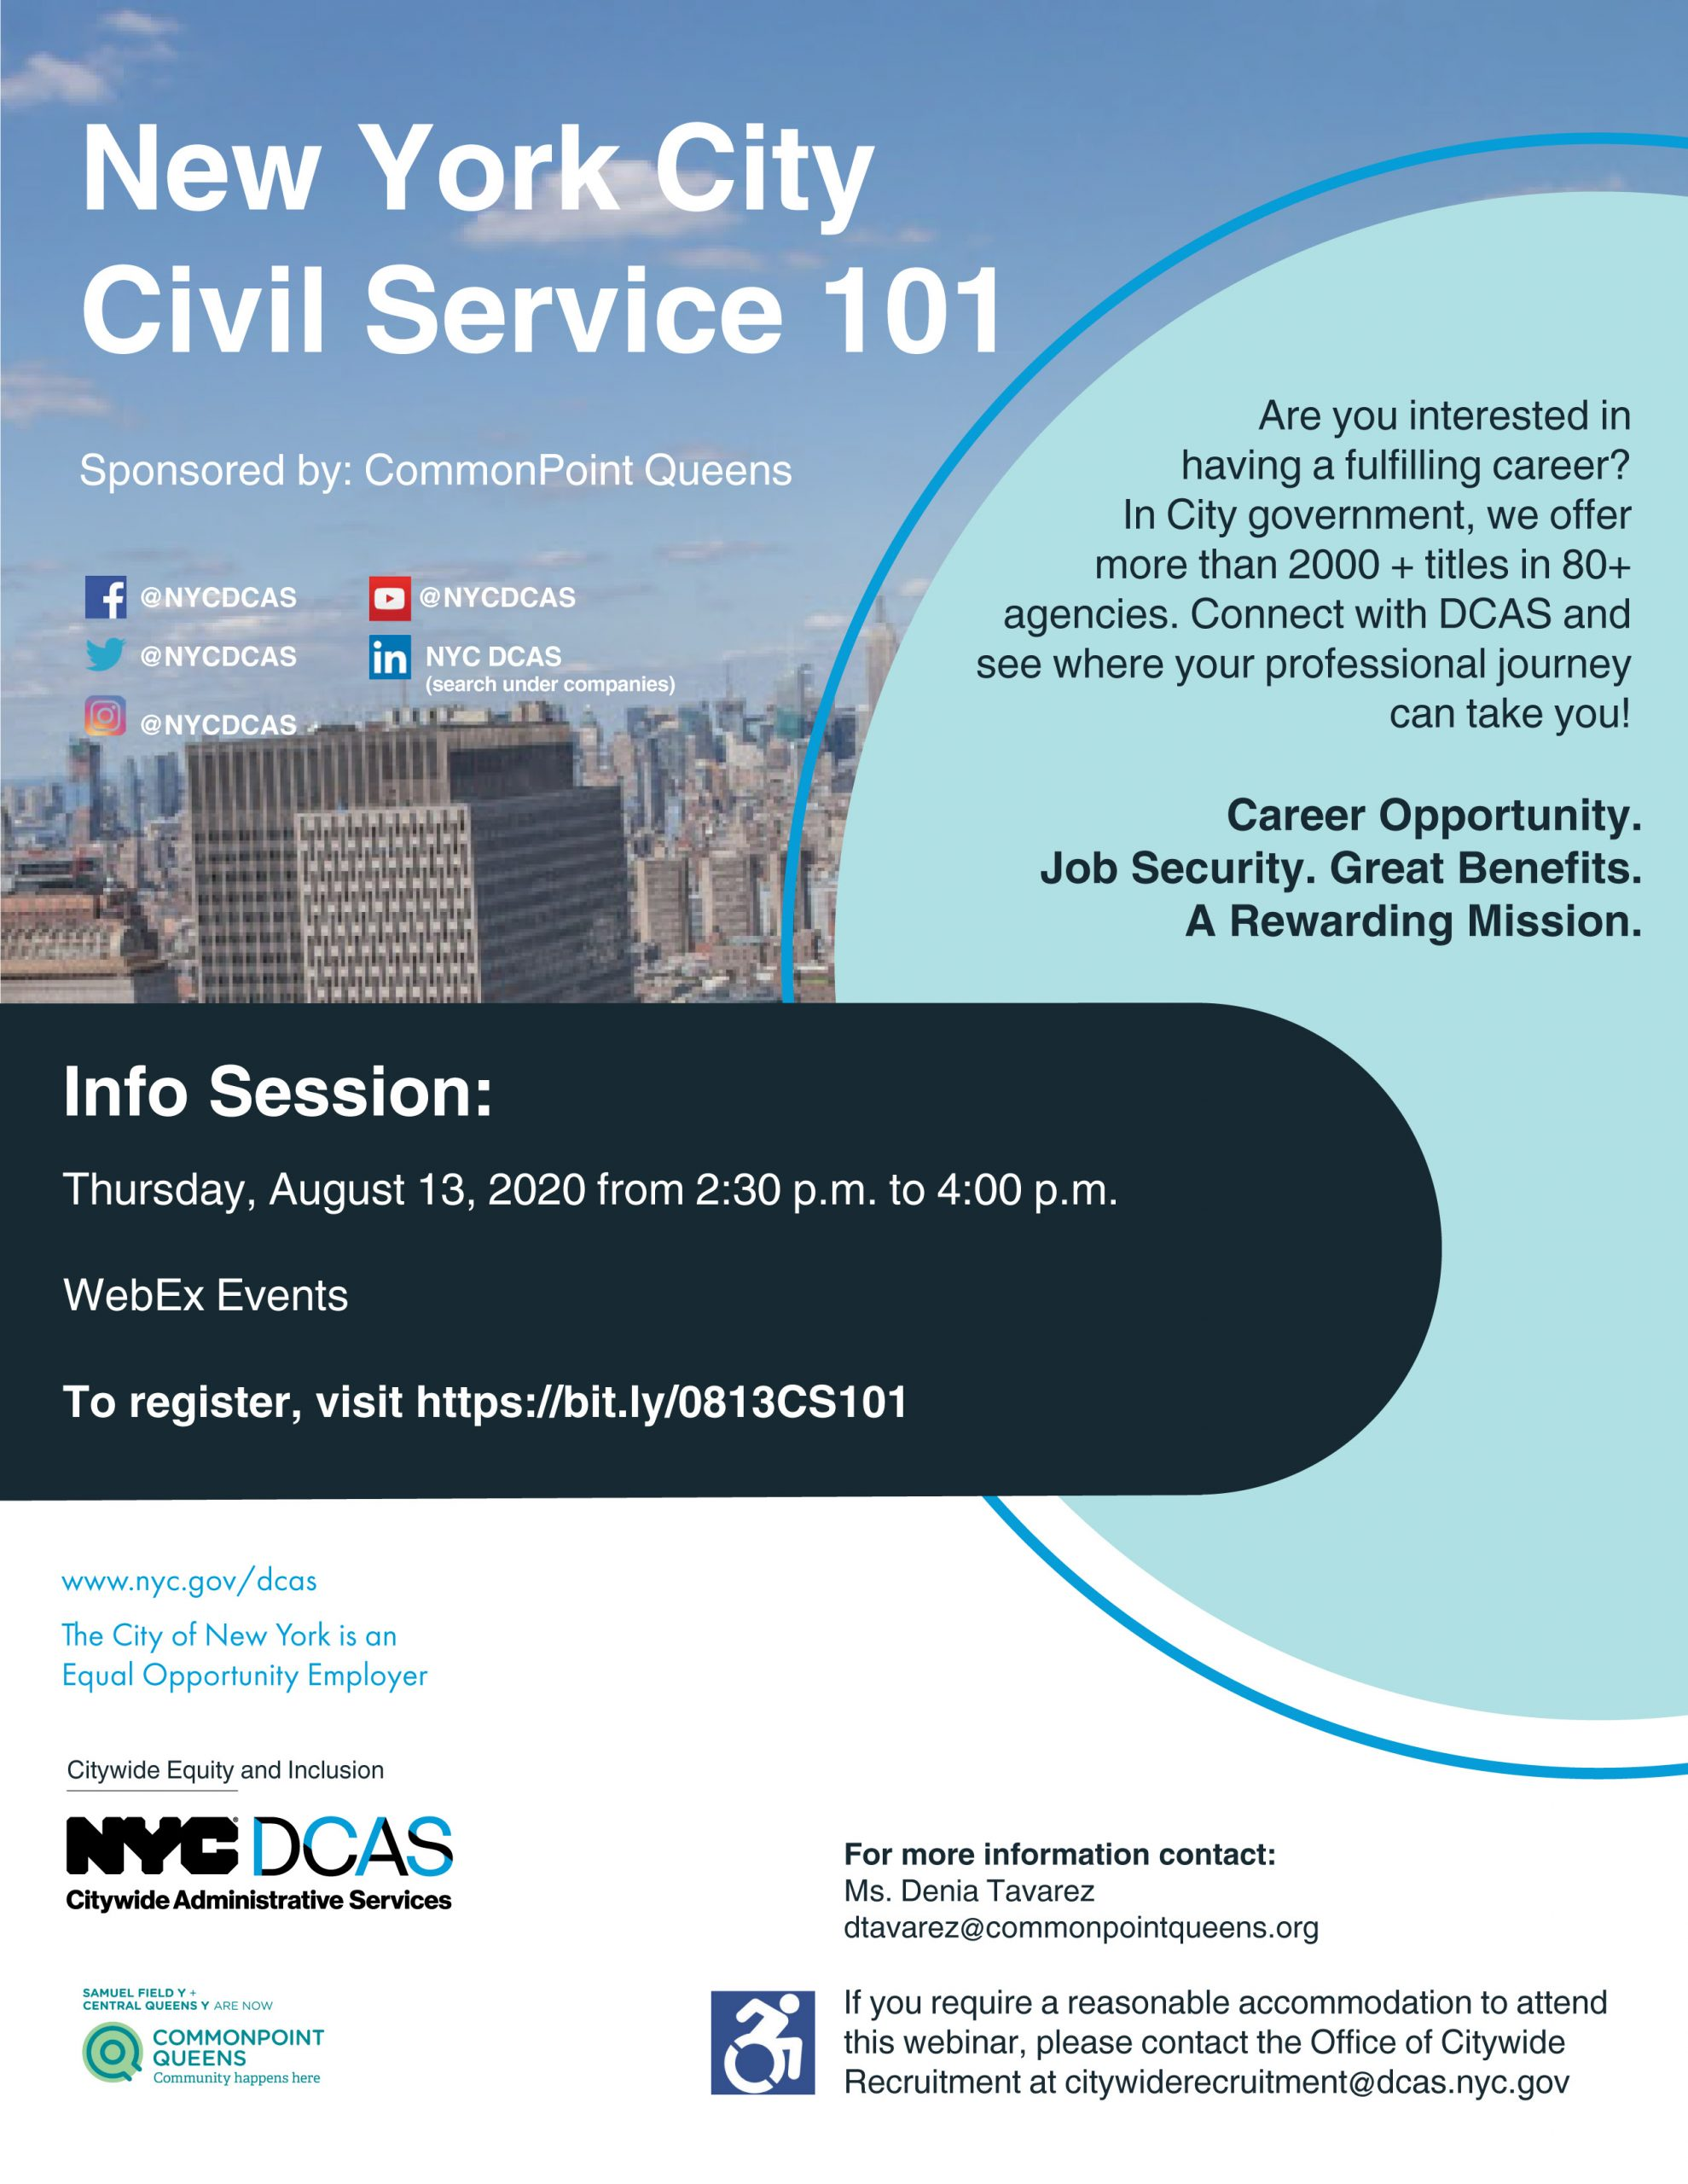 Commonpoint Queens Workforce Department to Host New York City Civil Service 101 Information Session